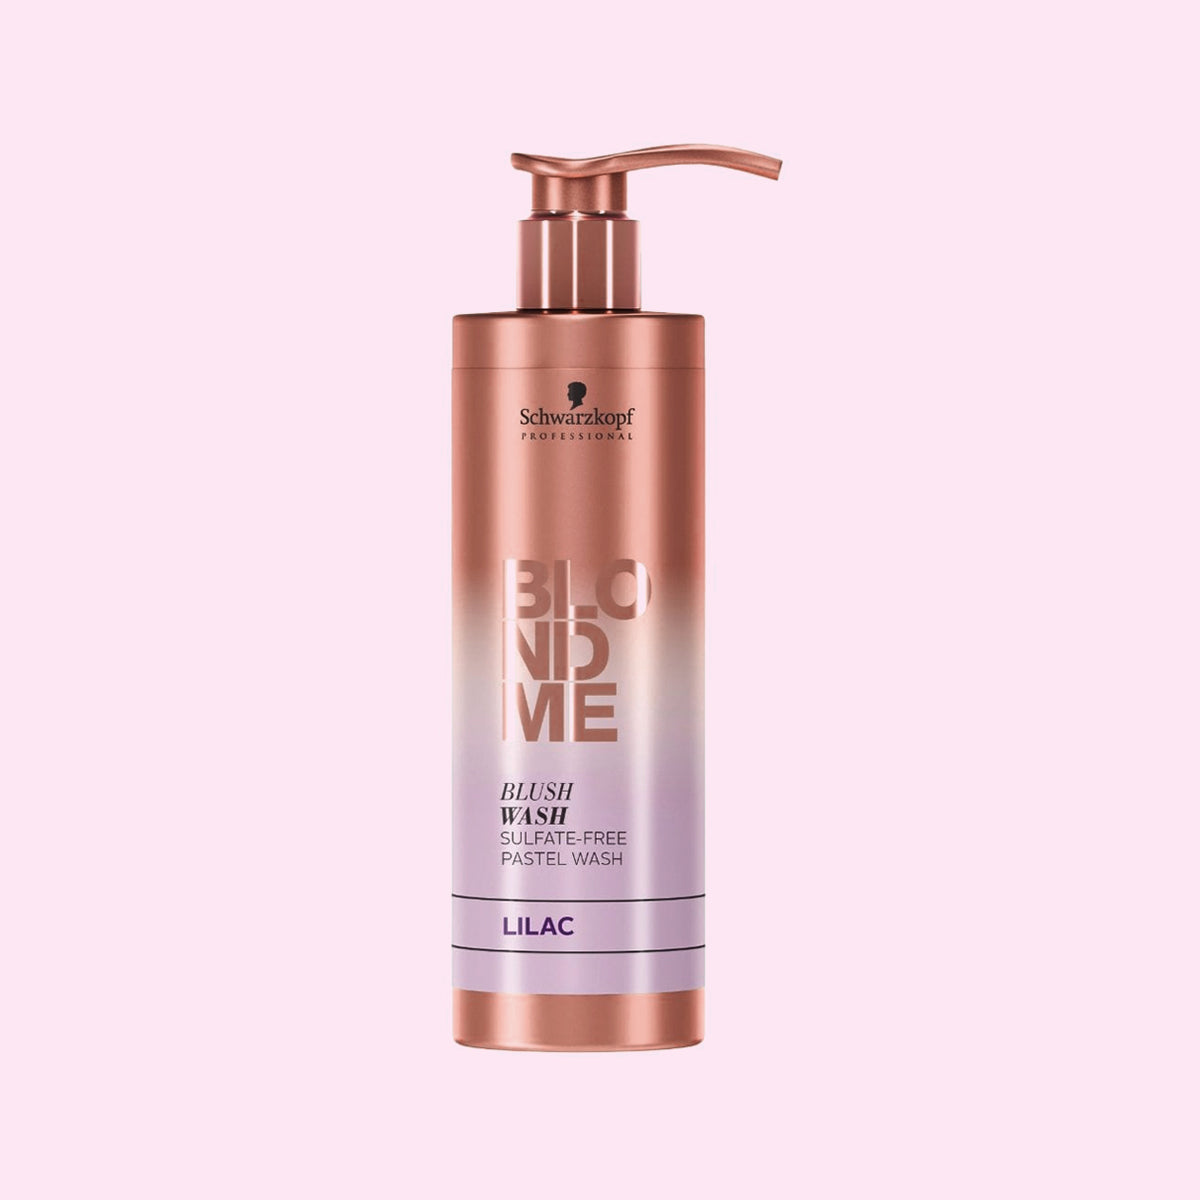 BLONDME Lilac Wash 250ml